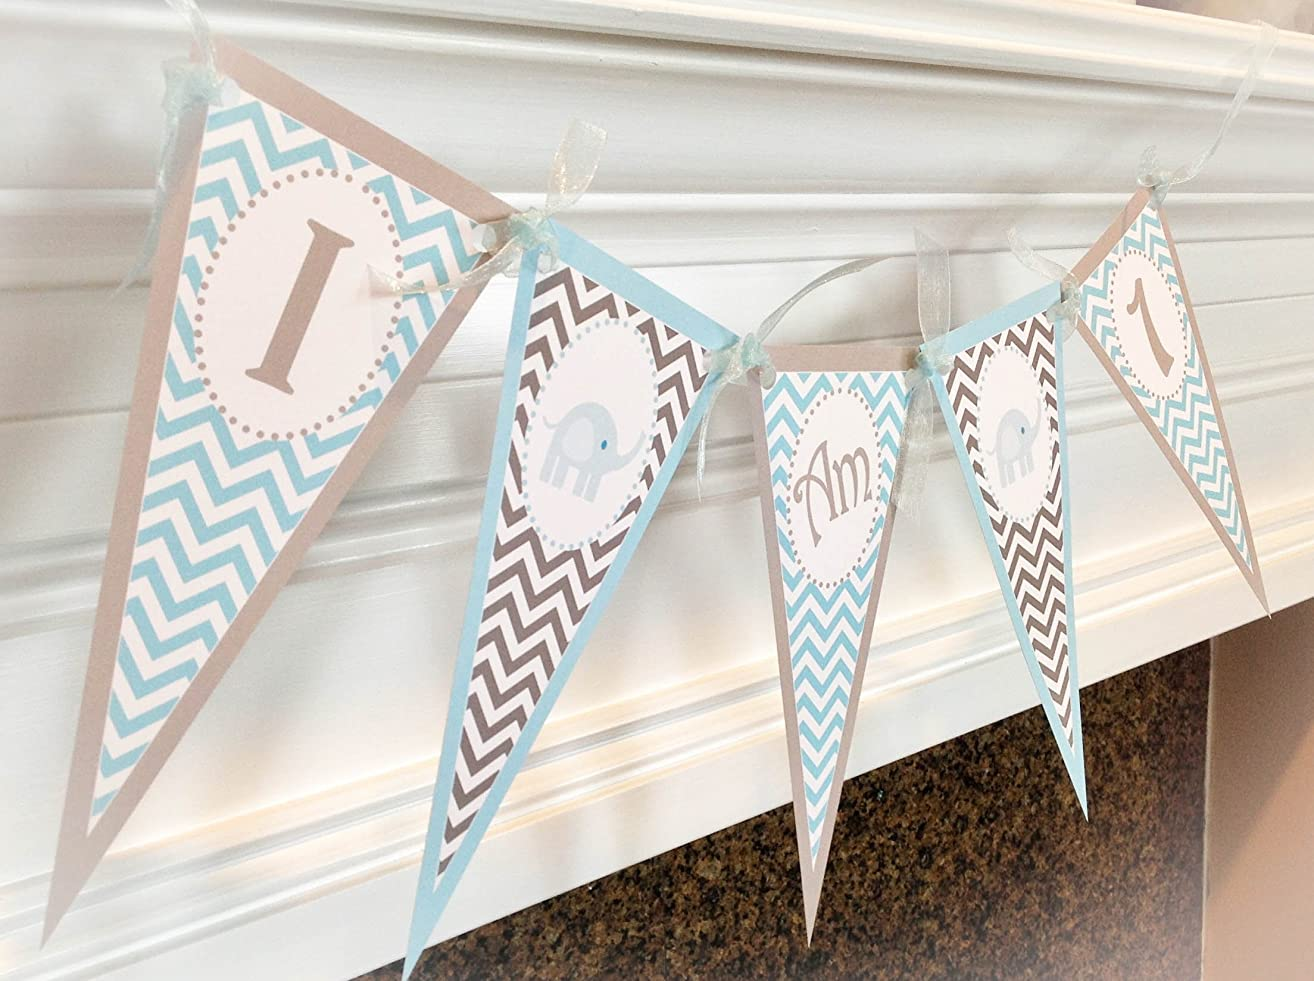 1 am 1 Pennant Highchair Banner - Baby Blue Elephant Happy Birthday Collection - Blue & Gray Chevron - Party Packs Available